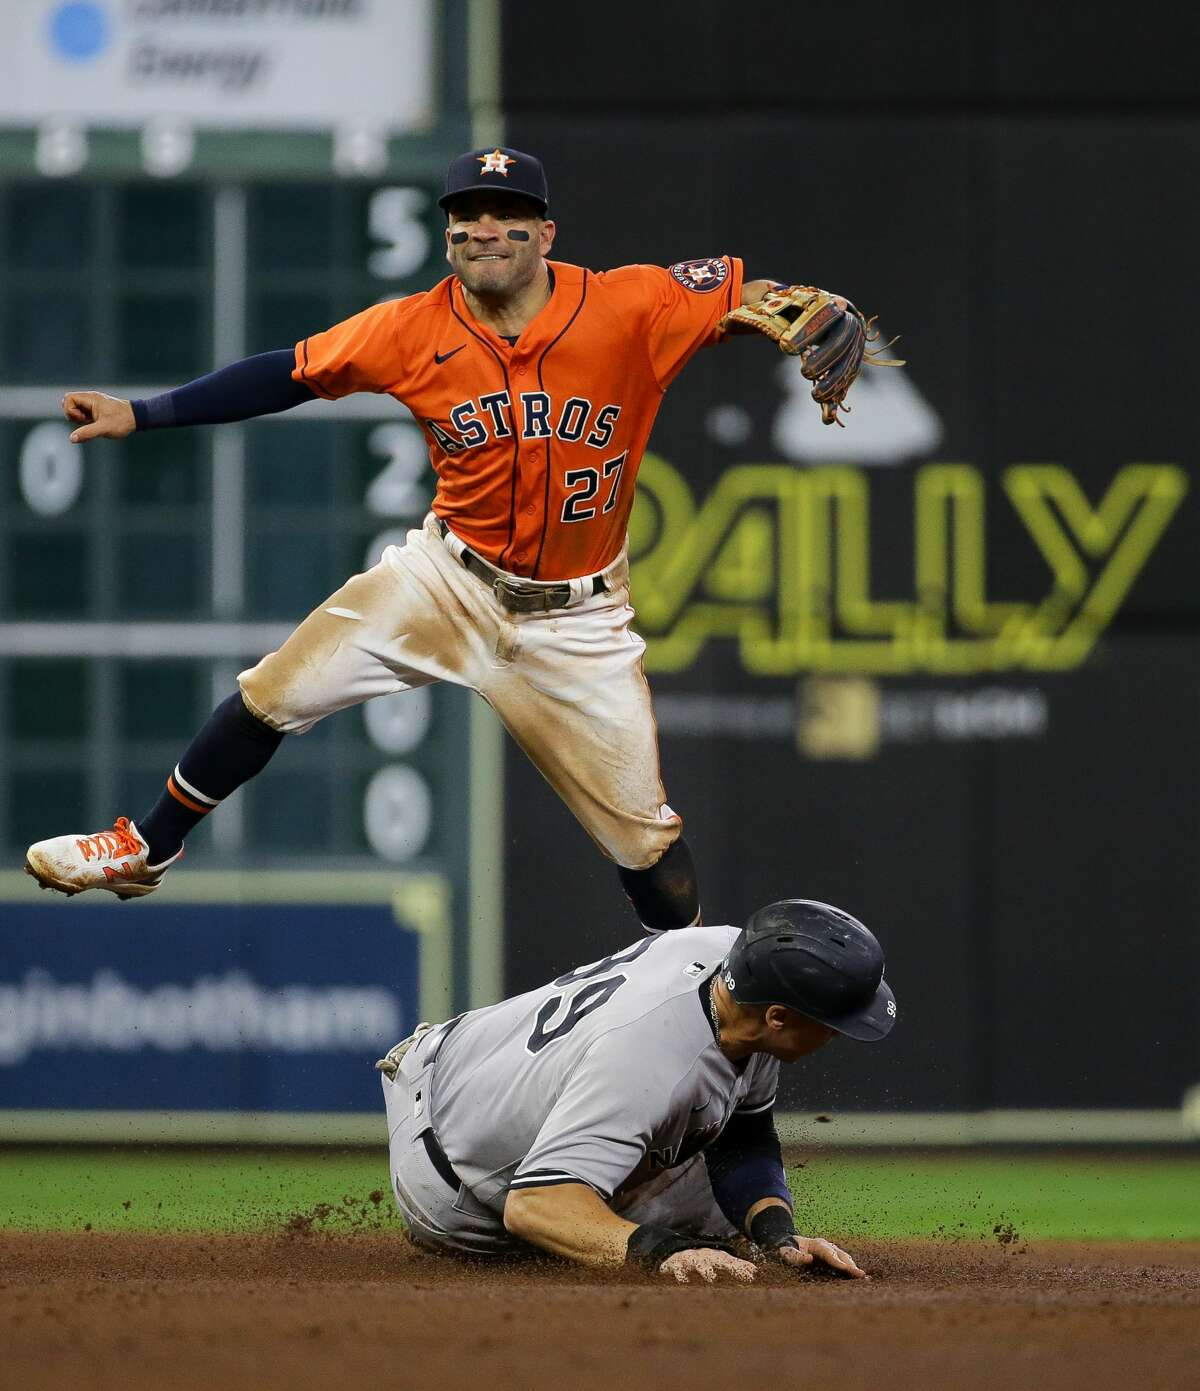 Houston Astros second baseman Jose Altuve (27) turns a double play against the New York Yankees during the seventh inning of an MLB game at Minute Maid Park on Friday, July 9, 2021, in Houston.